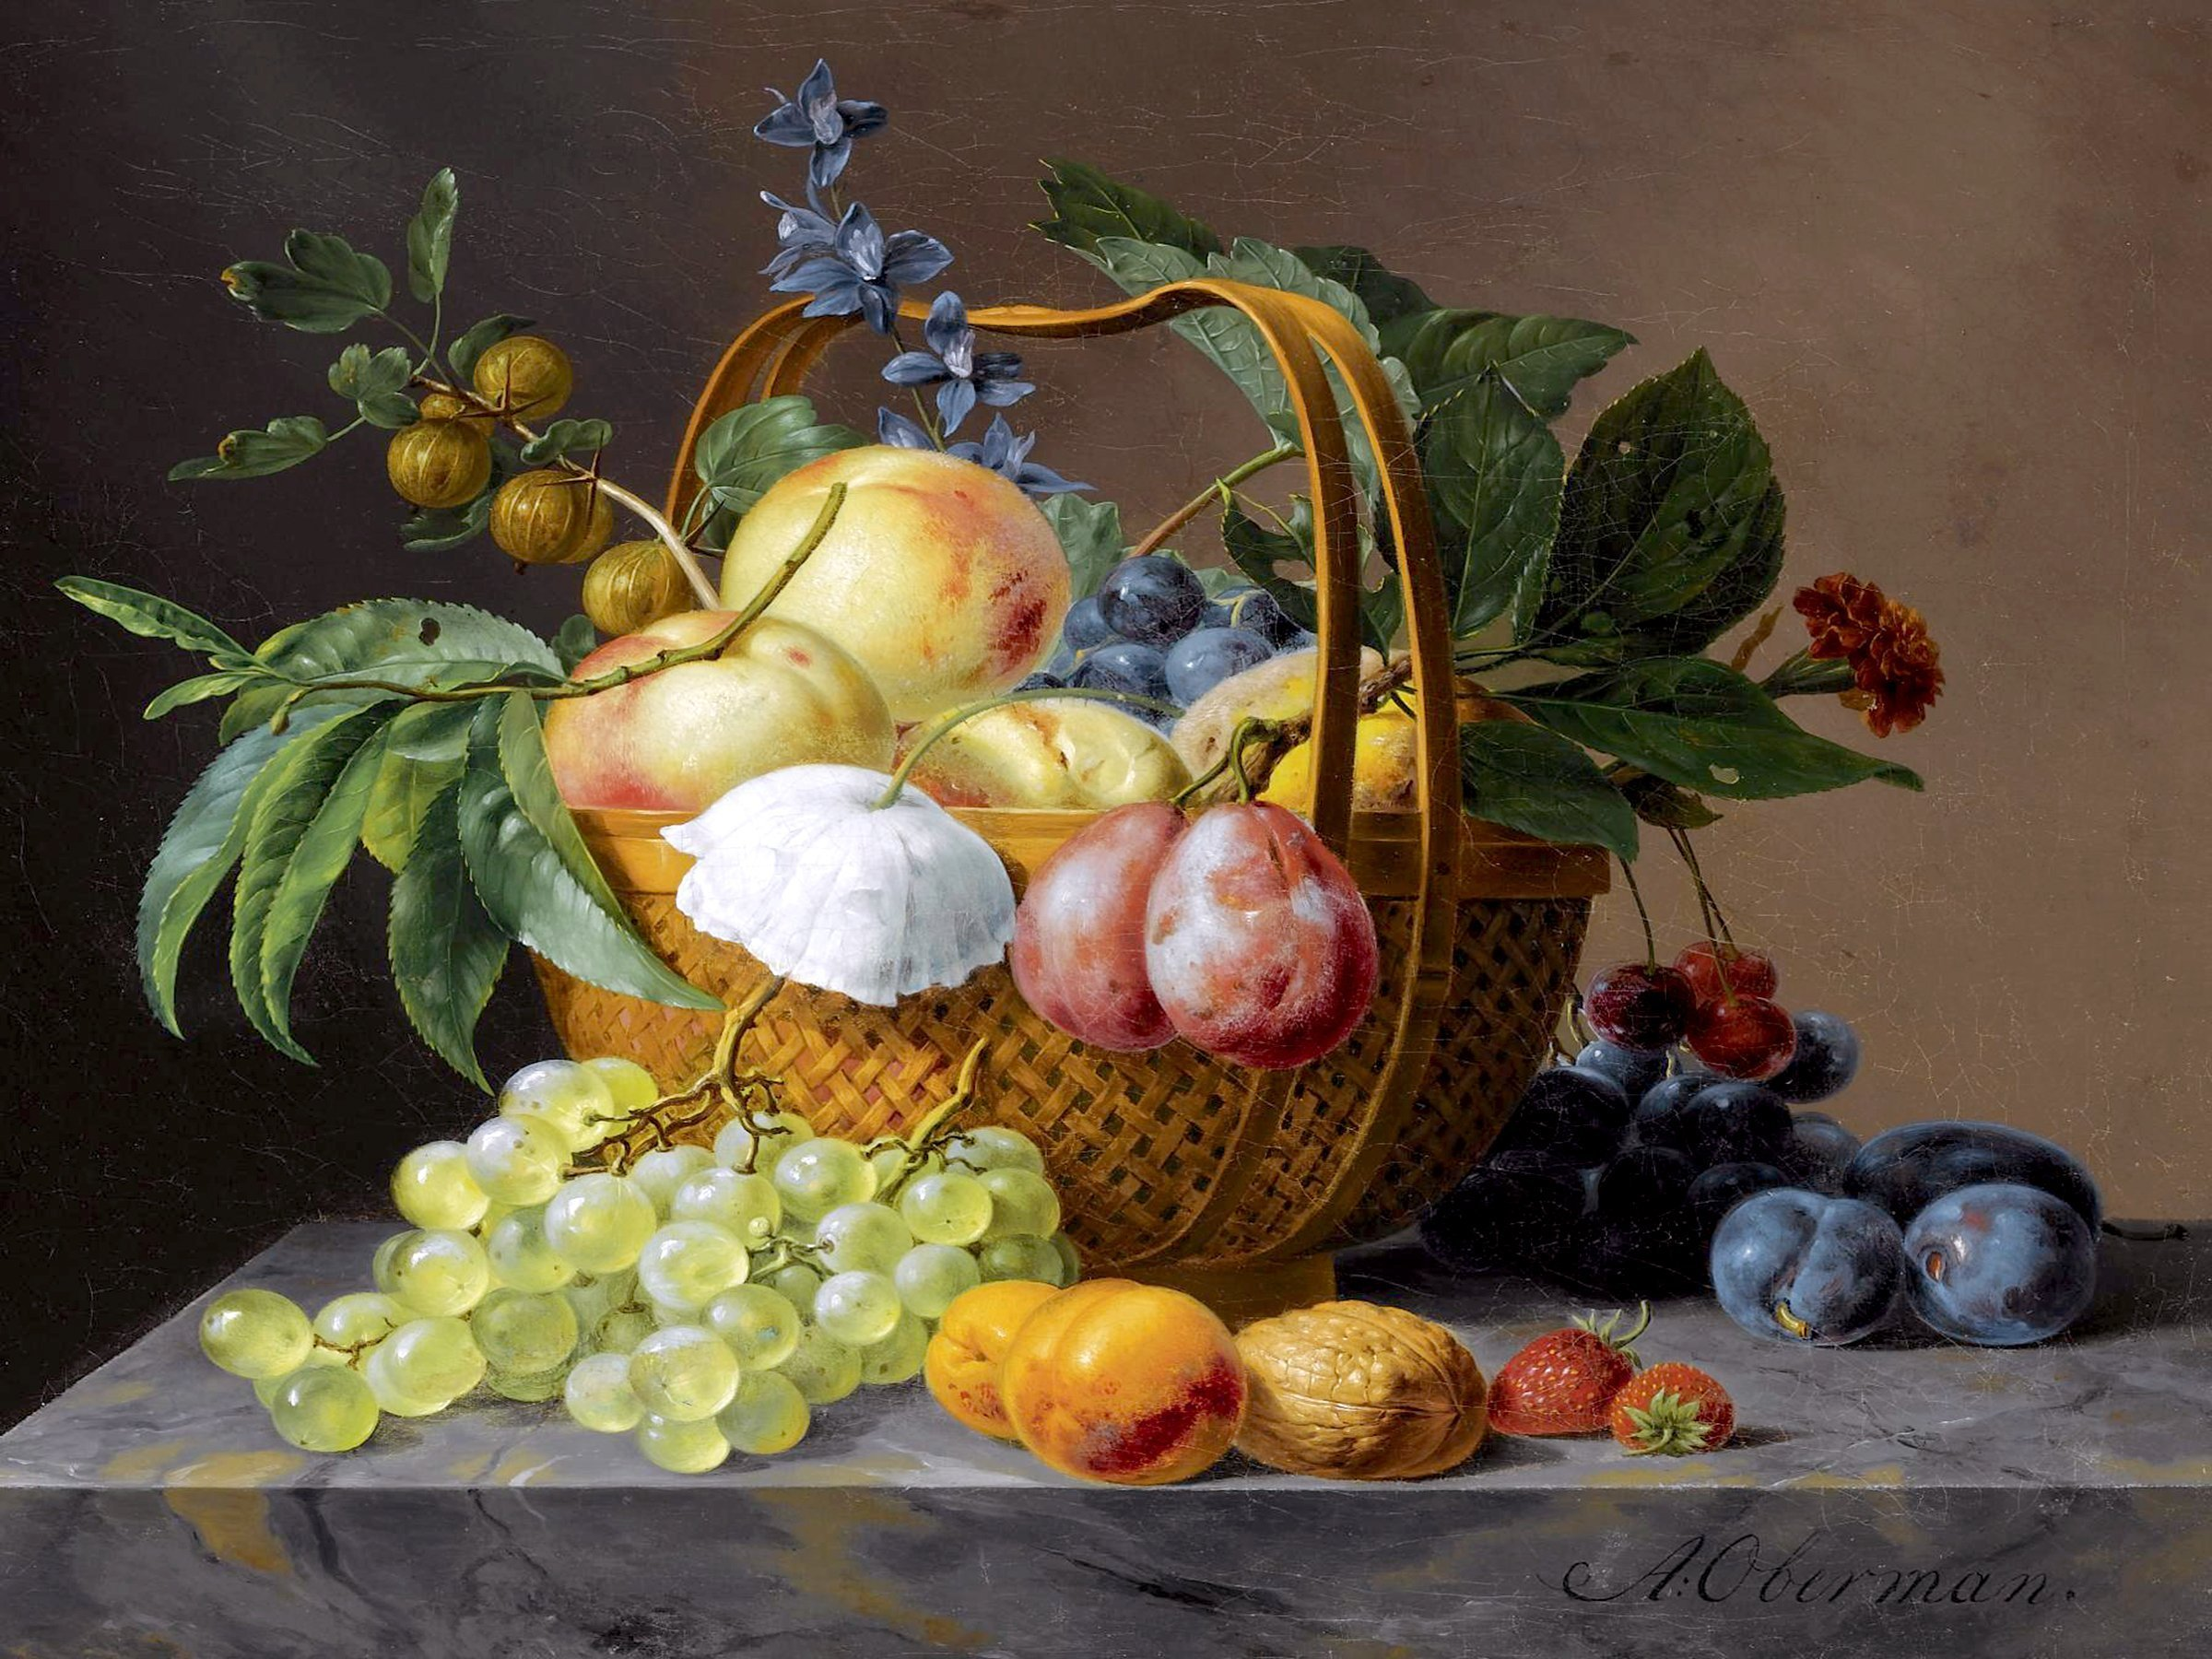 STILL LIFE WITH FRUIT AND FLOWERS IN A BASKET by Anthony Oberman plum gooseberry Accent Tile Mural Kitchen Bathroom Wall Backsplash Behind Stove Range Sink Splashback One Tile 8''x6'' Ceramic, Glossy by FlekmanArt